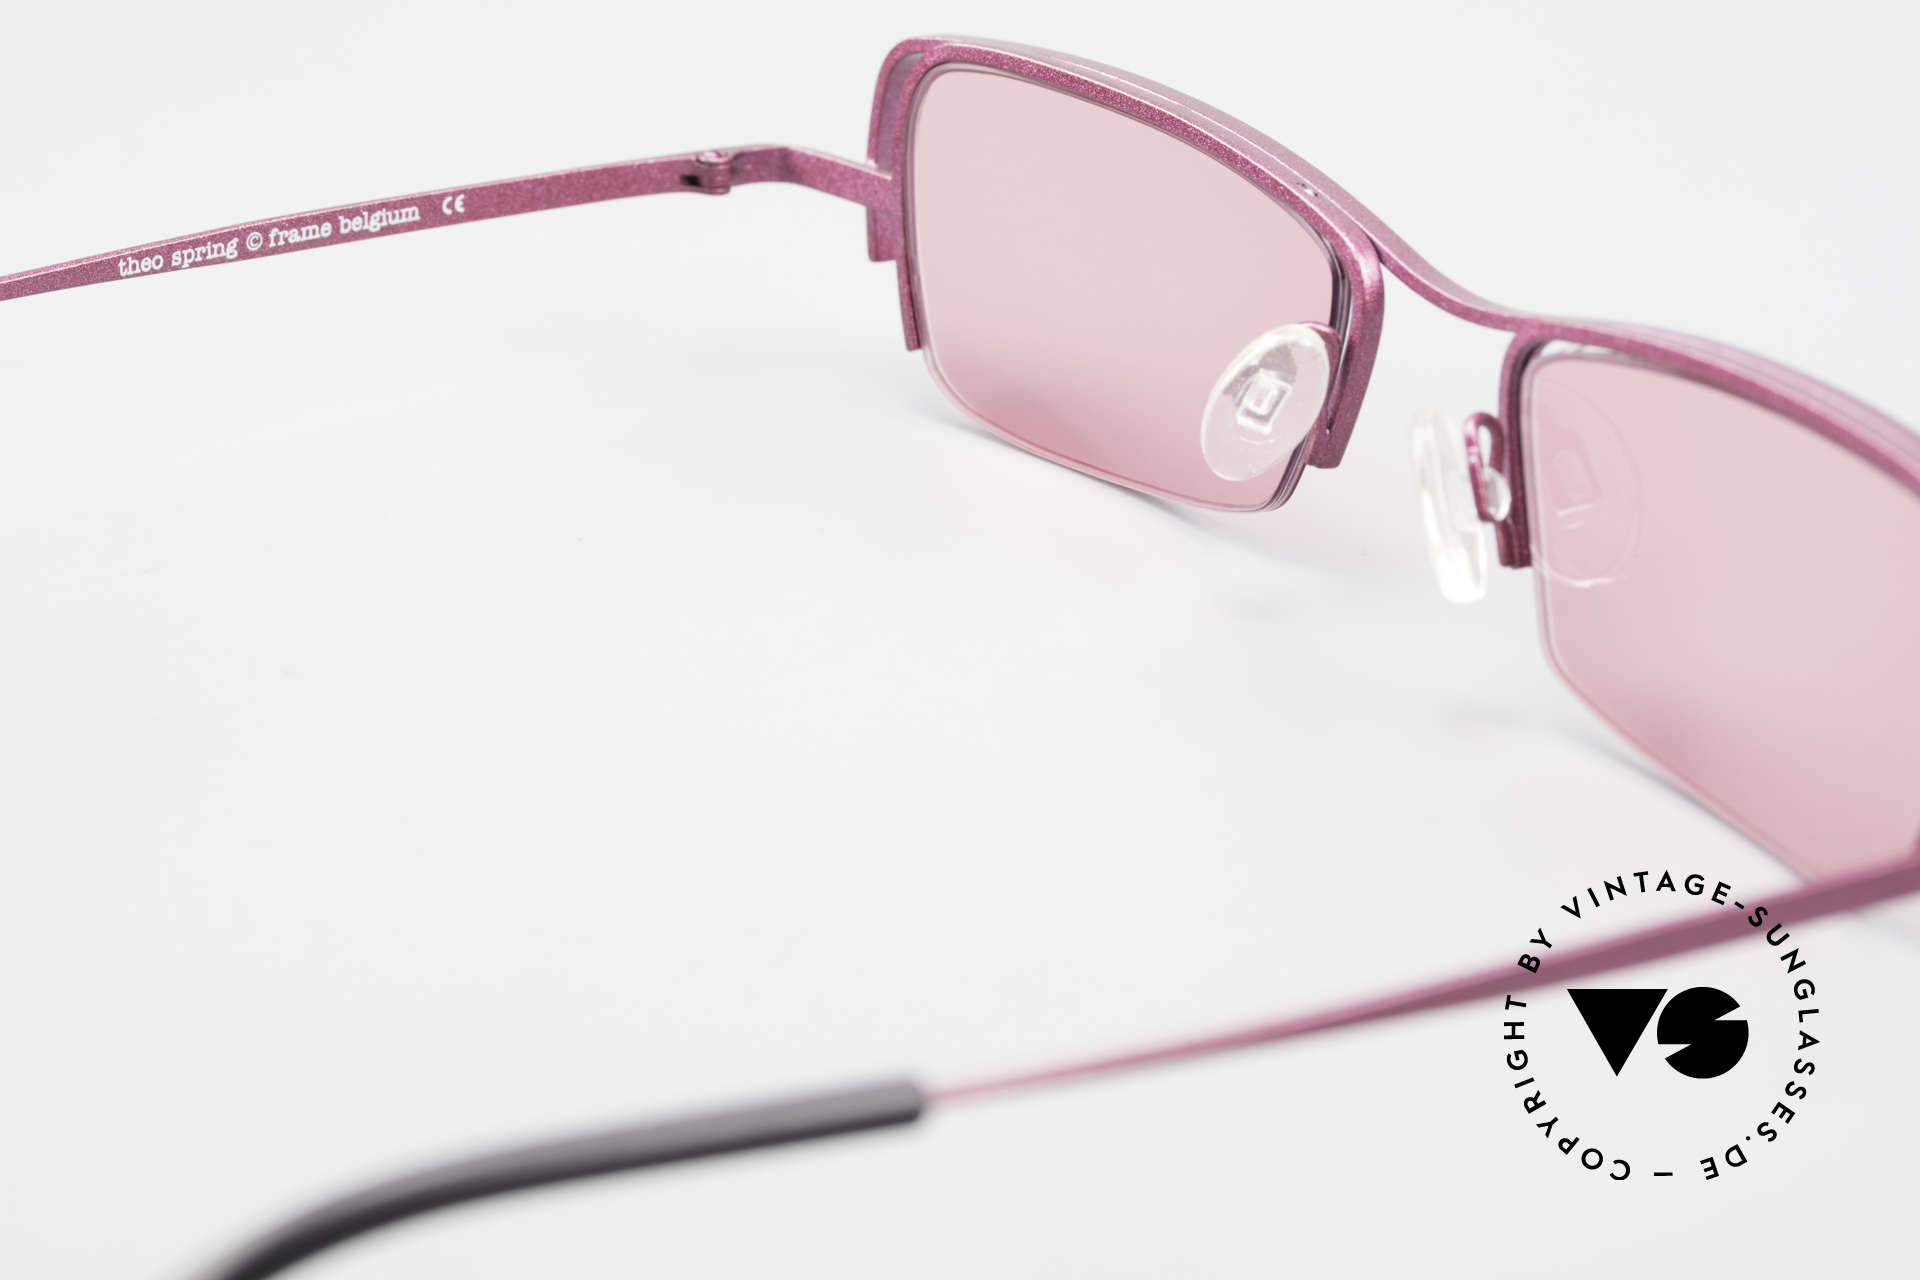 Theo Belgium Sping Square Ladies Designer Shades, so to speak: vintage sunglasses with representativeness, Made for Women